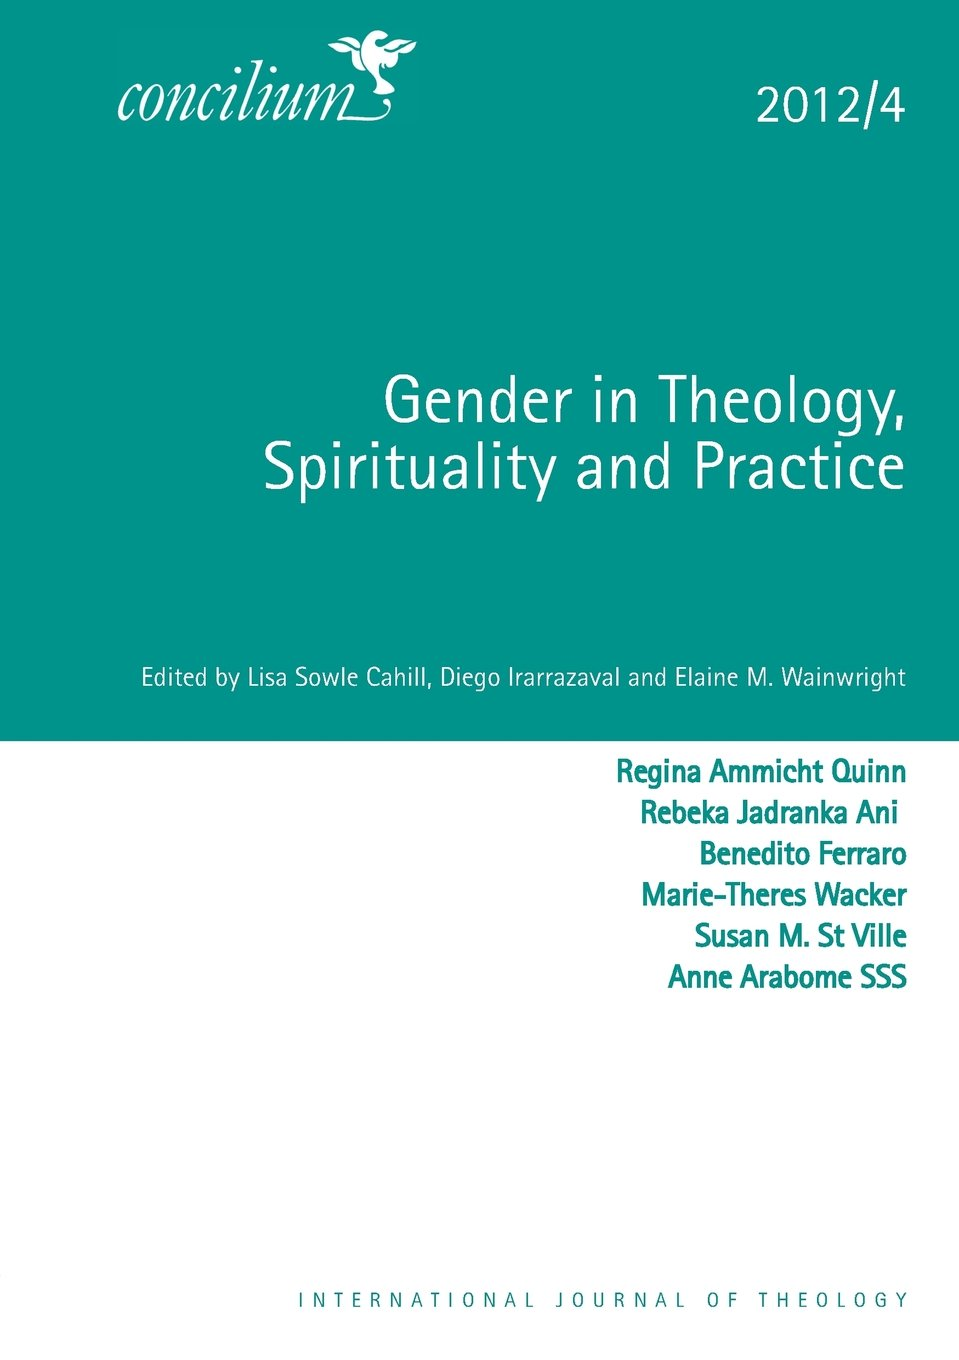 Cover of Gender in Theology, Spirituality and Practice